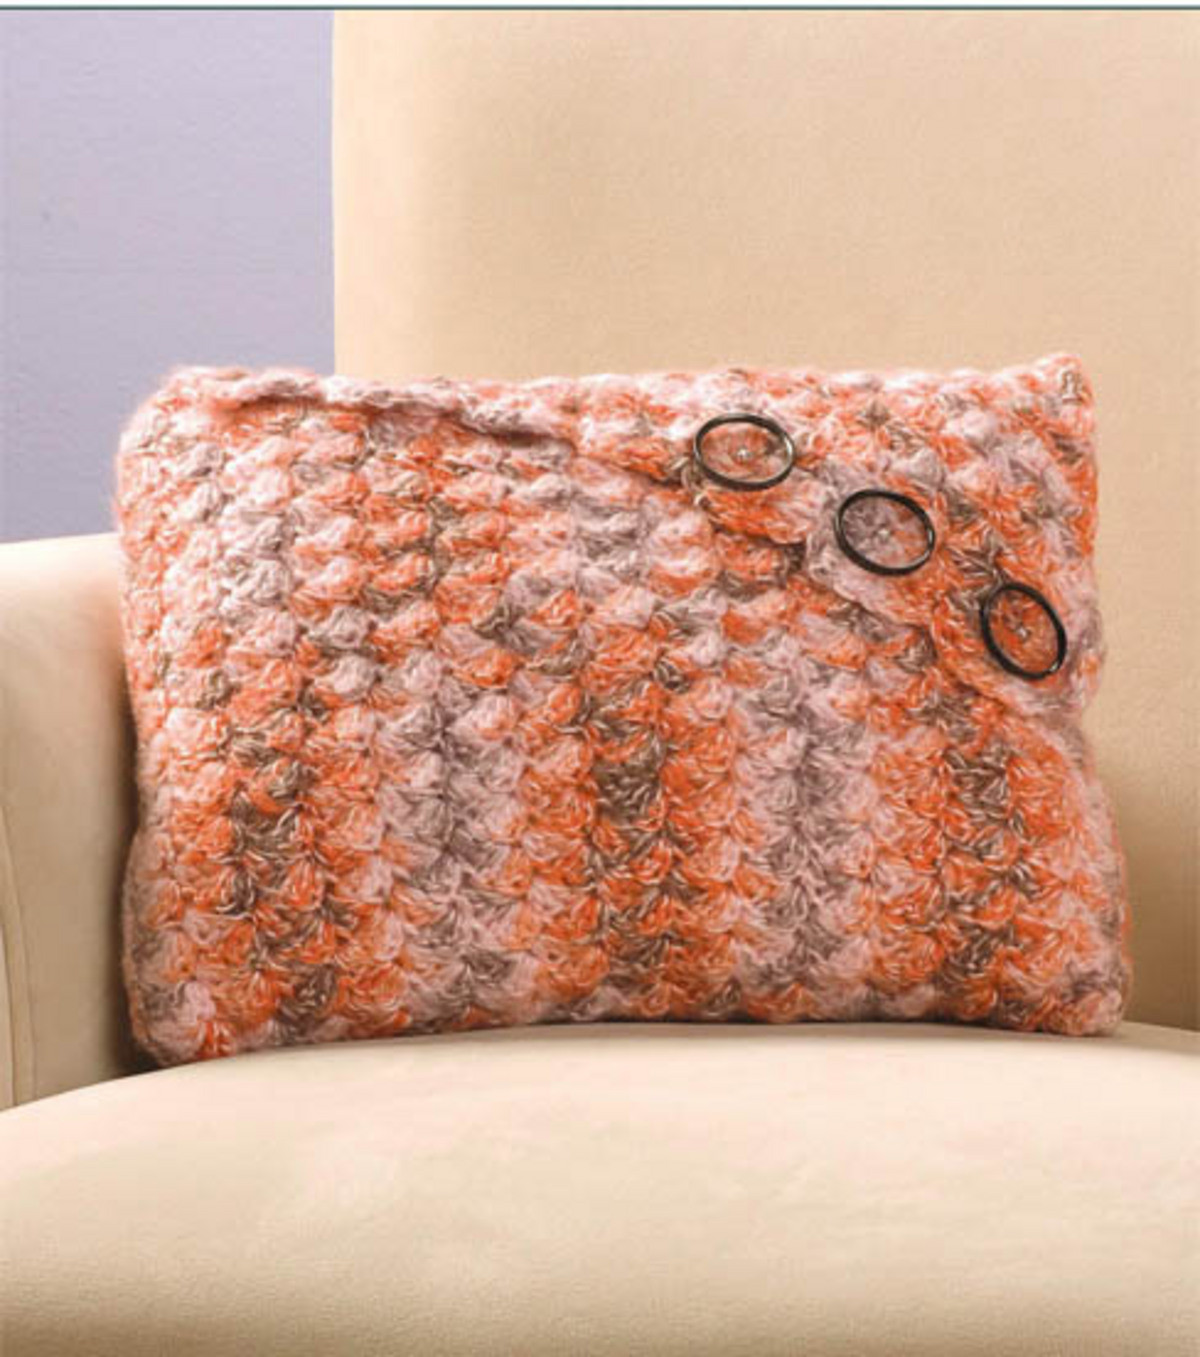 Craftdrawer Crafts Easy to Crochet Envelope Pillow